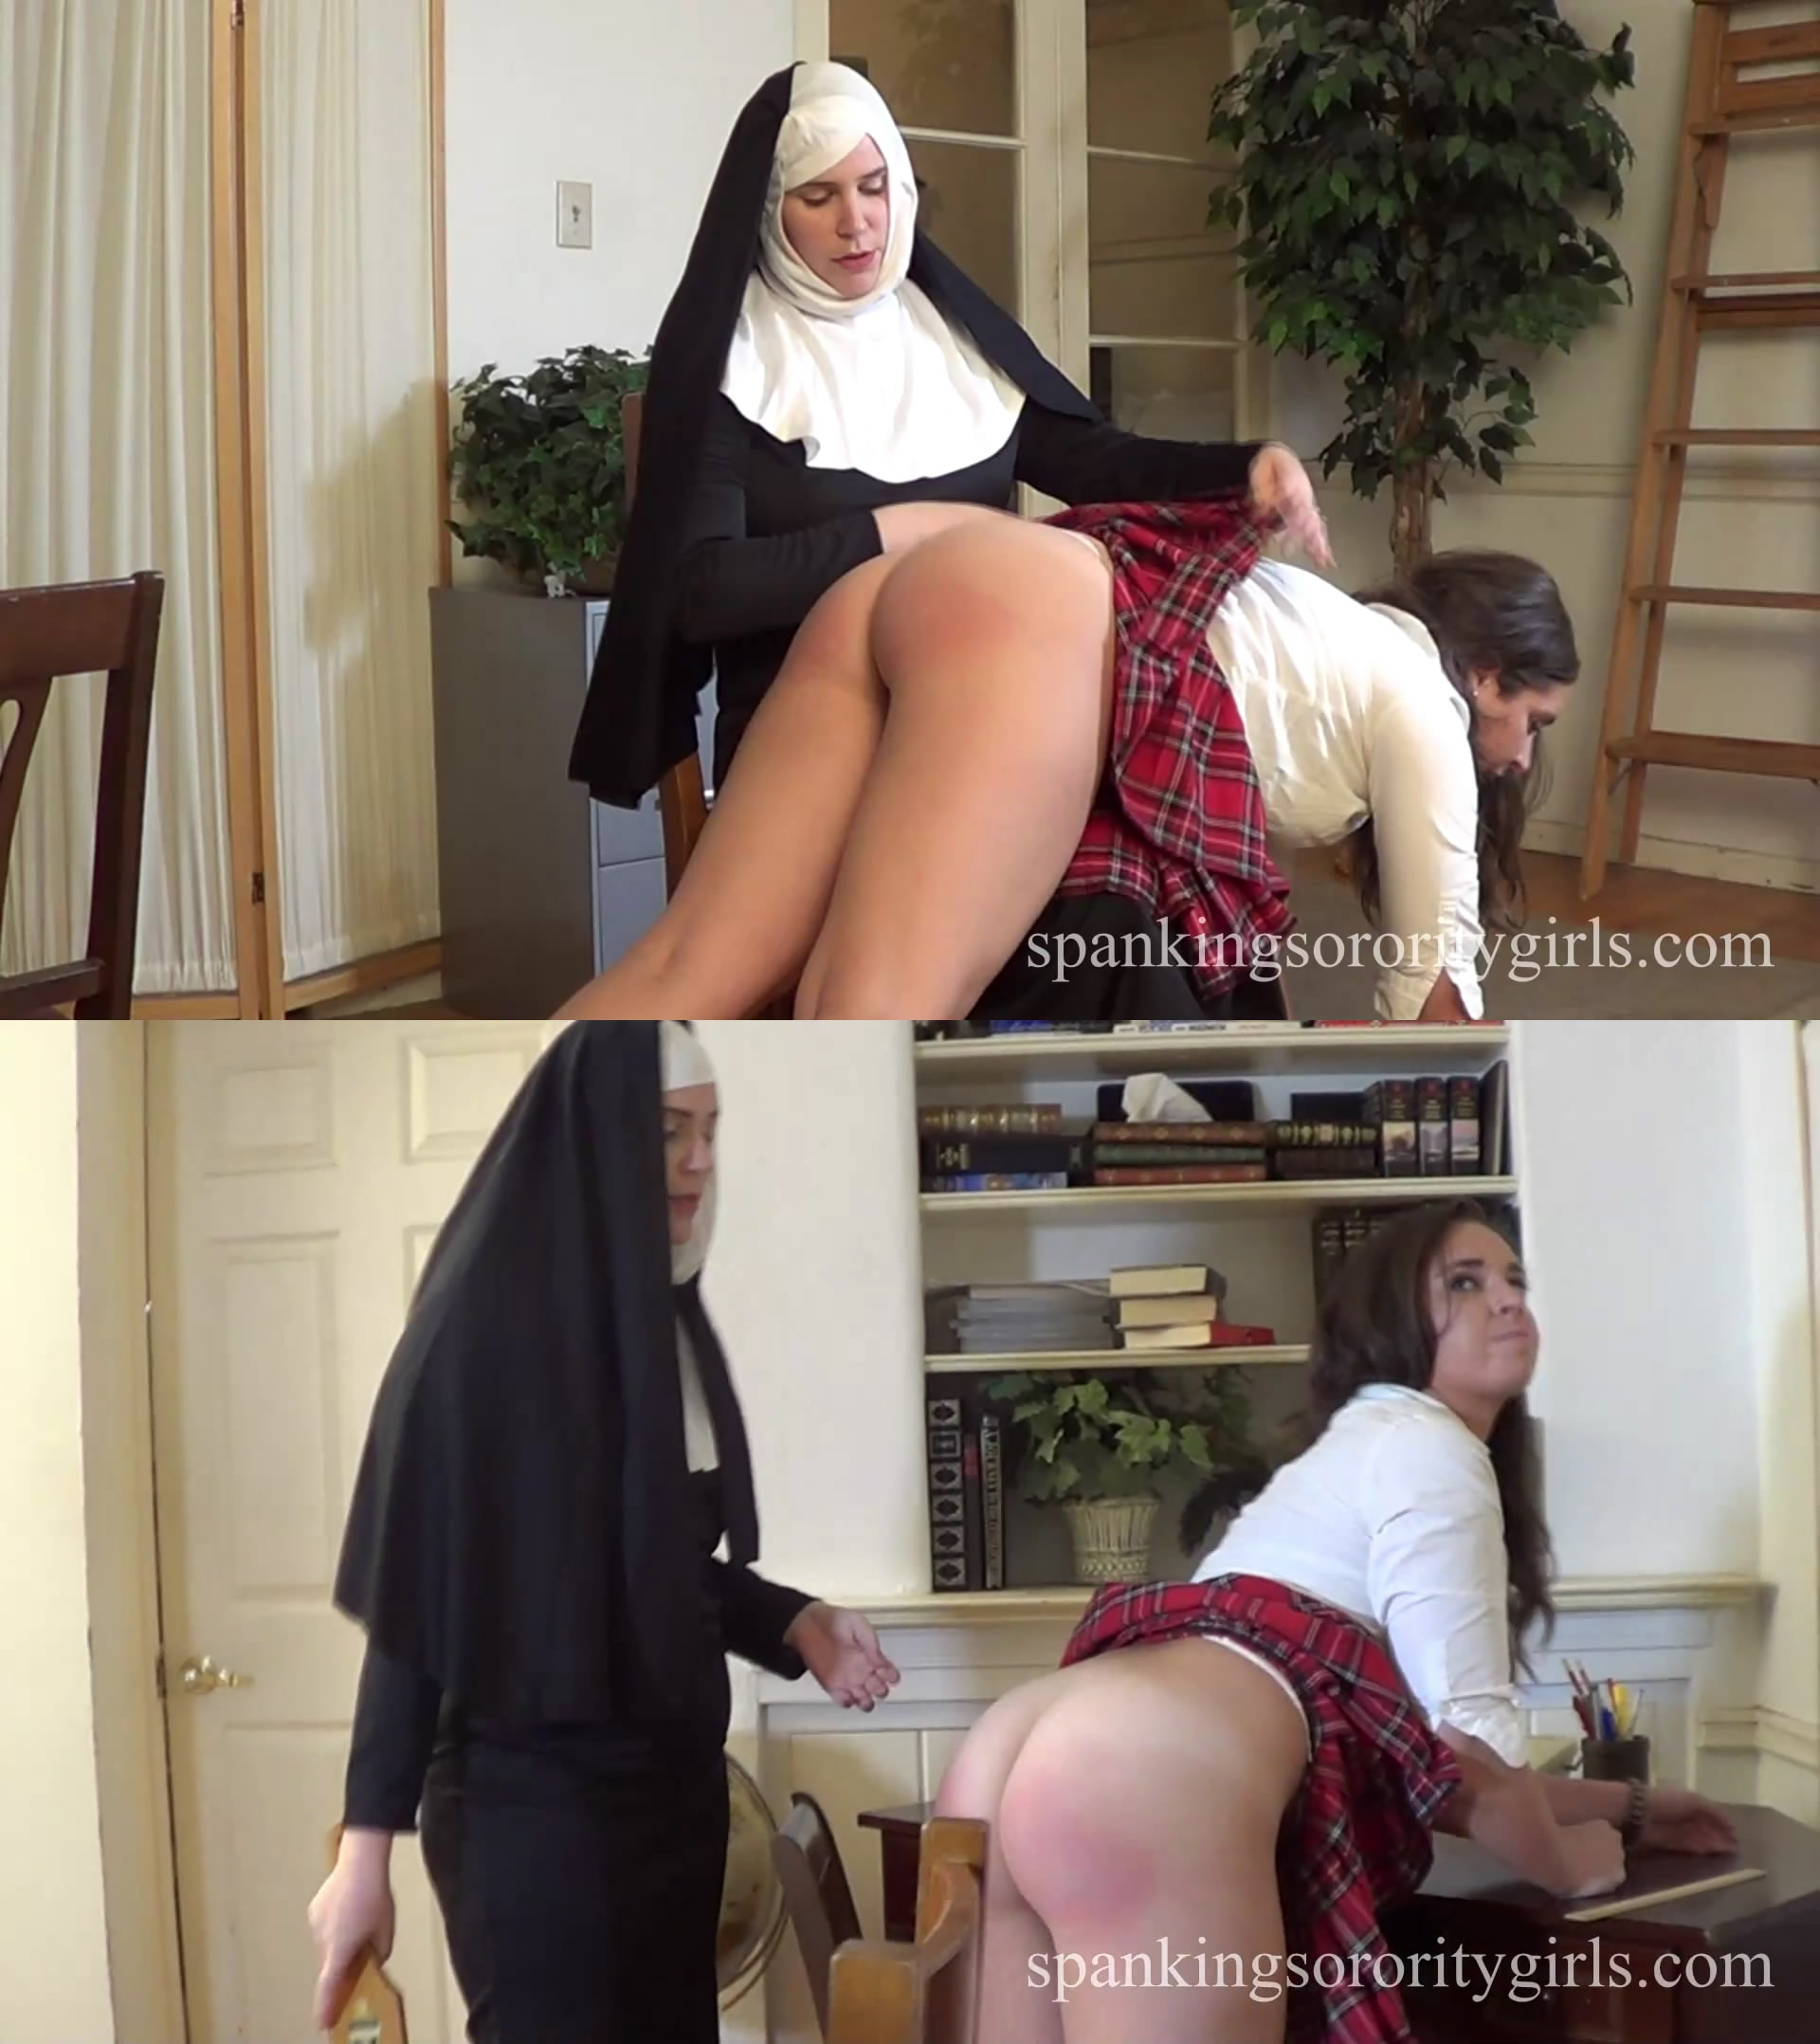 Spanking Sorority Girls – MP4/Full HD – Sister Mary Alex, Adriana Evans – Episode 186: Sister Alex Spanks Adriana in Her Office